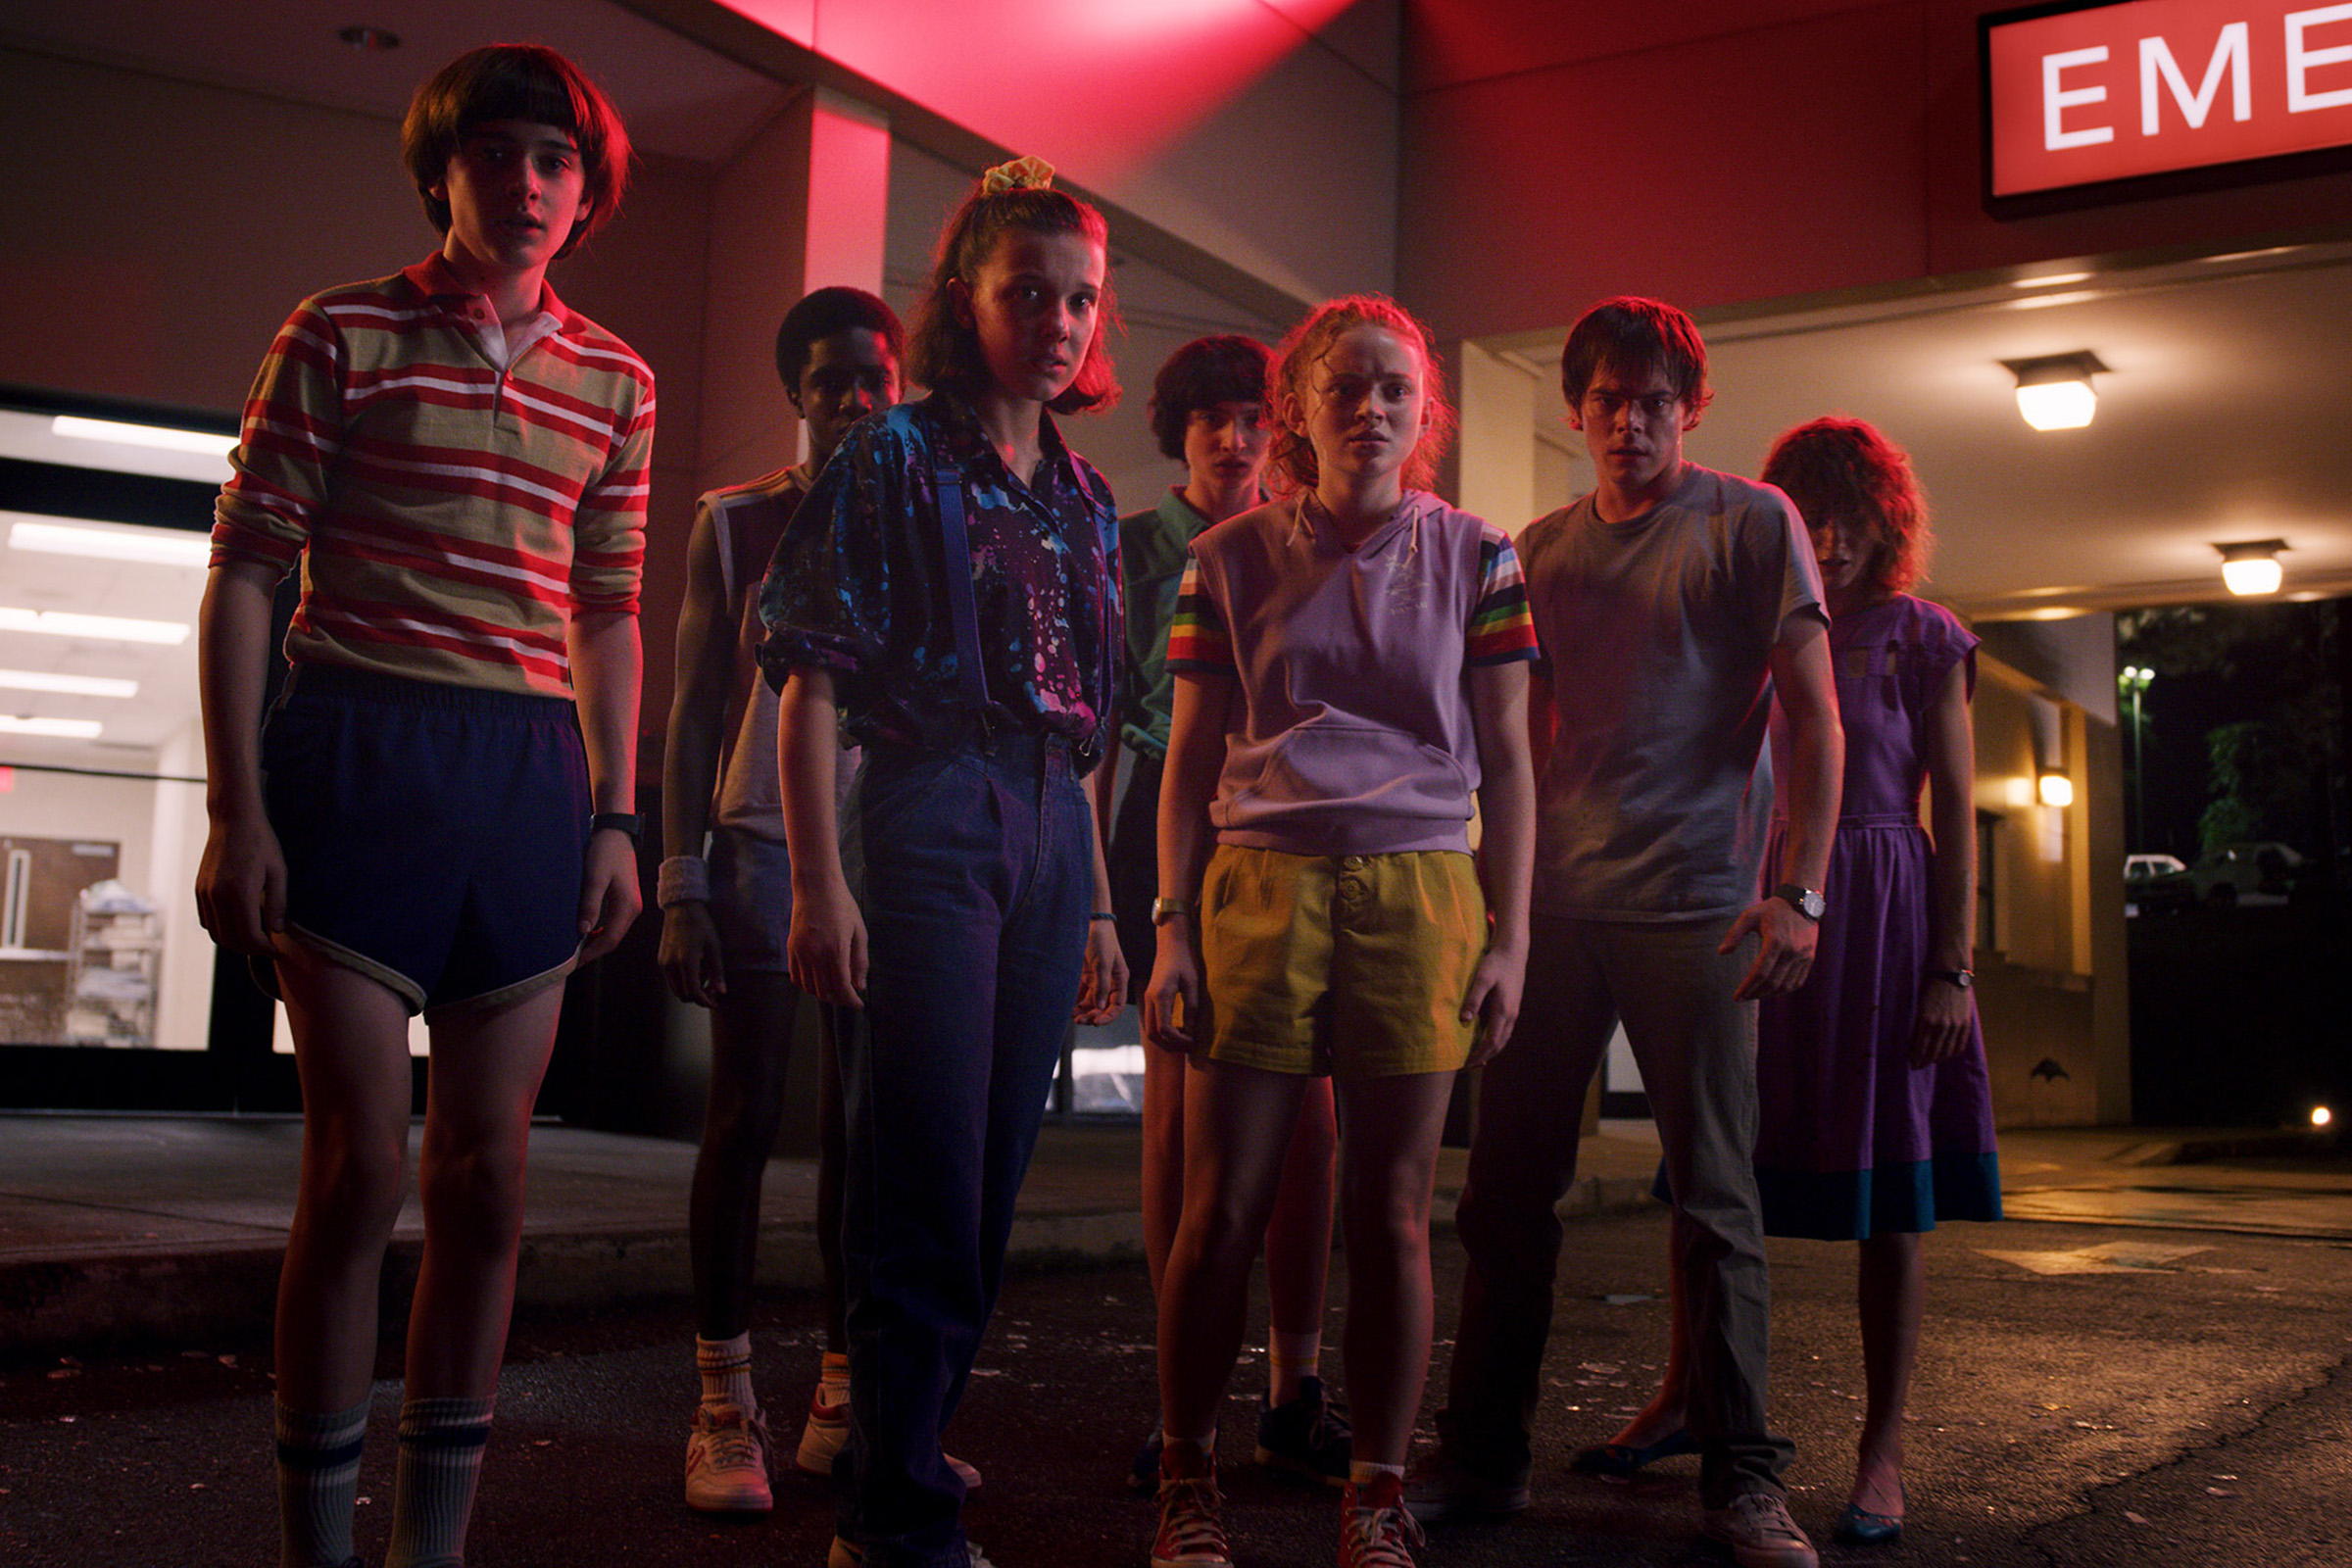 Will, Lucas, Eleven, Mike, Max, Jonathan and Nancy; the 'kids' of Stranger Things act with an agency beyond their respective years